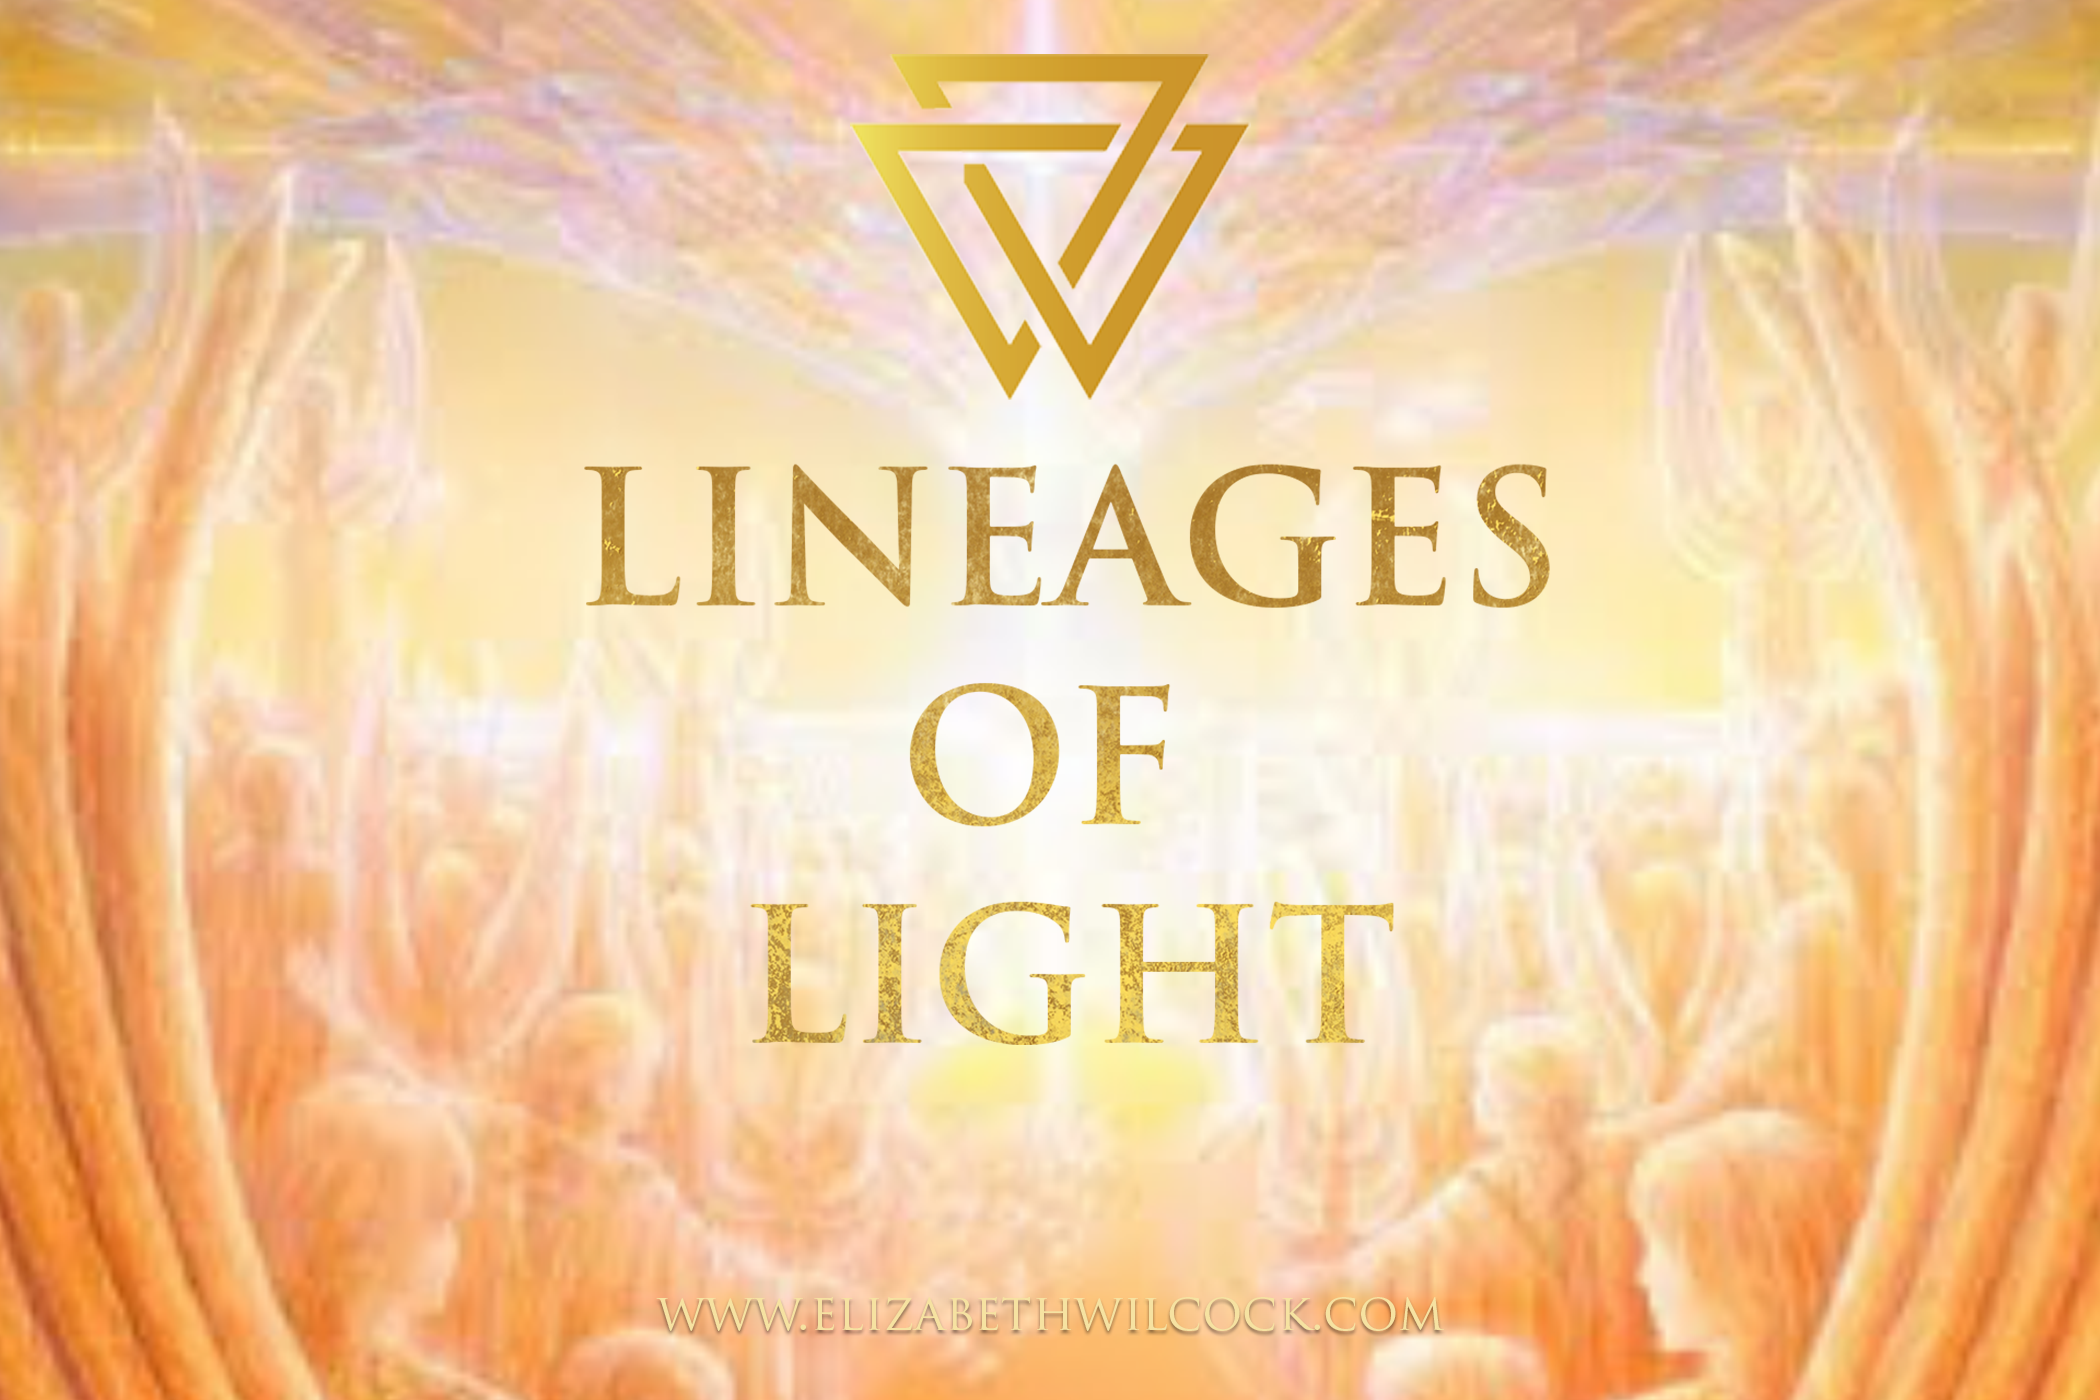 Lineages-of-Light.png